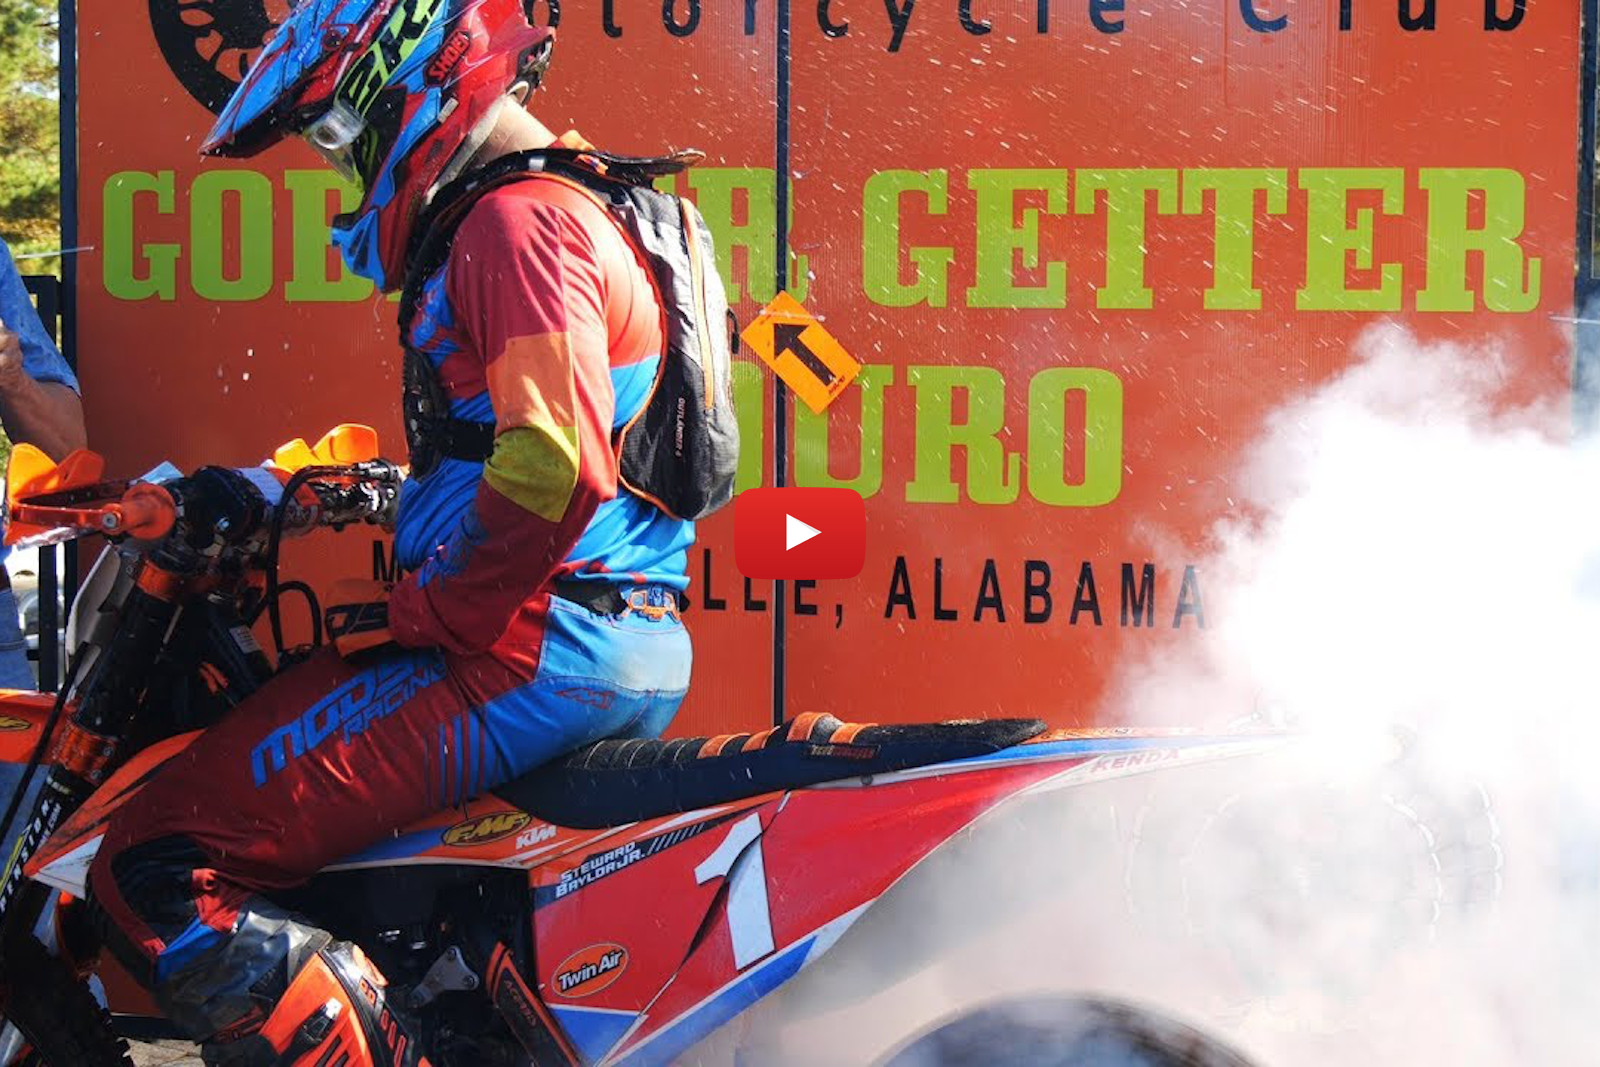 Gobbler Getter National Enduro – Flat-out between trees